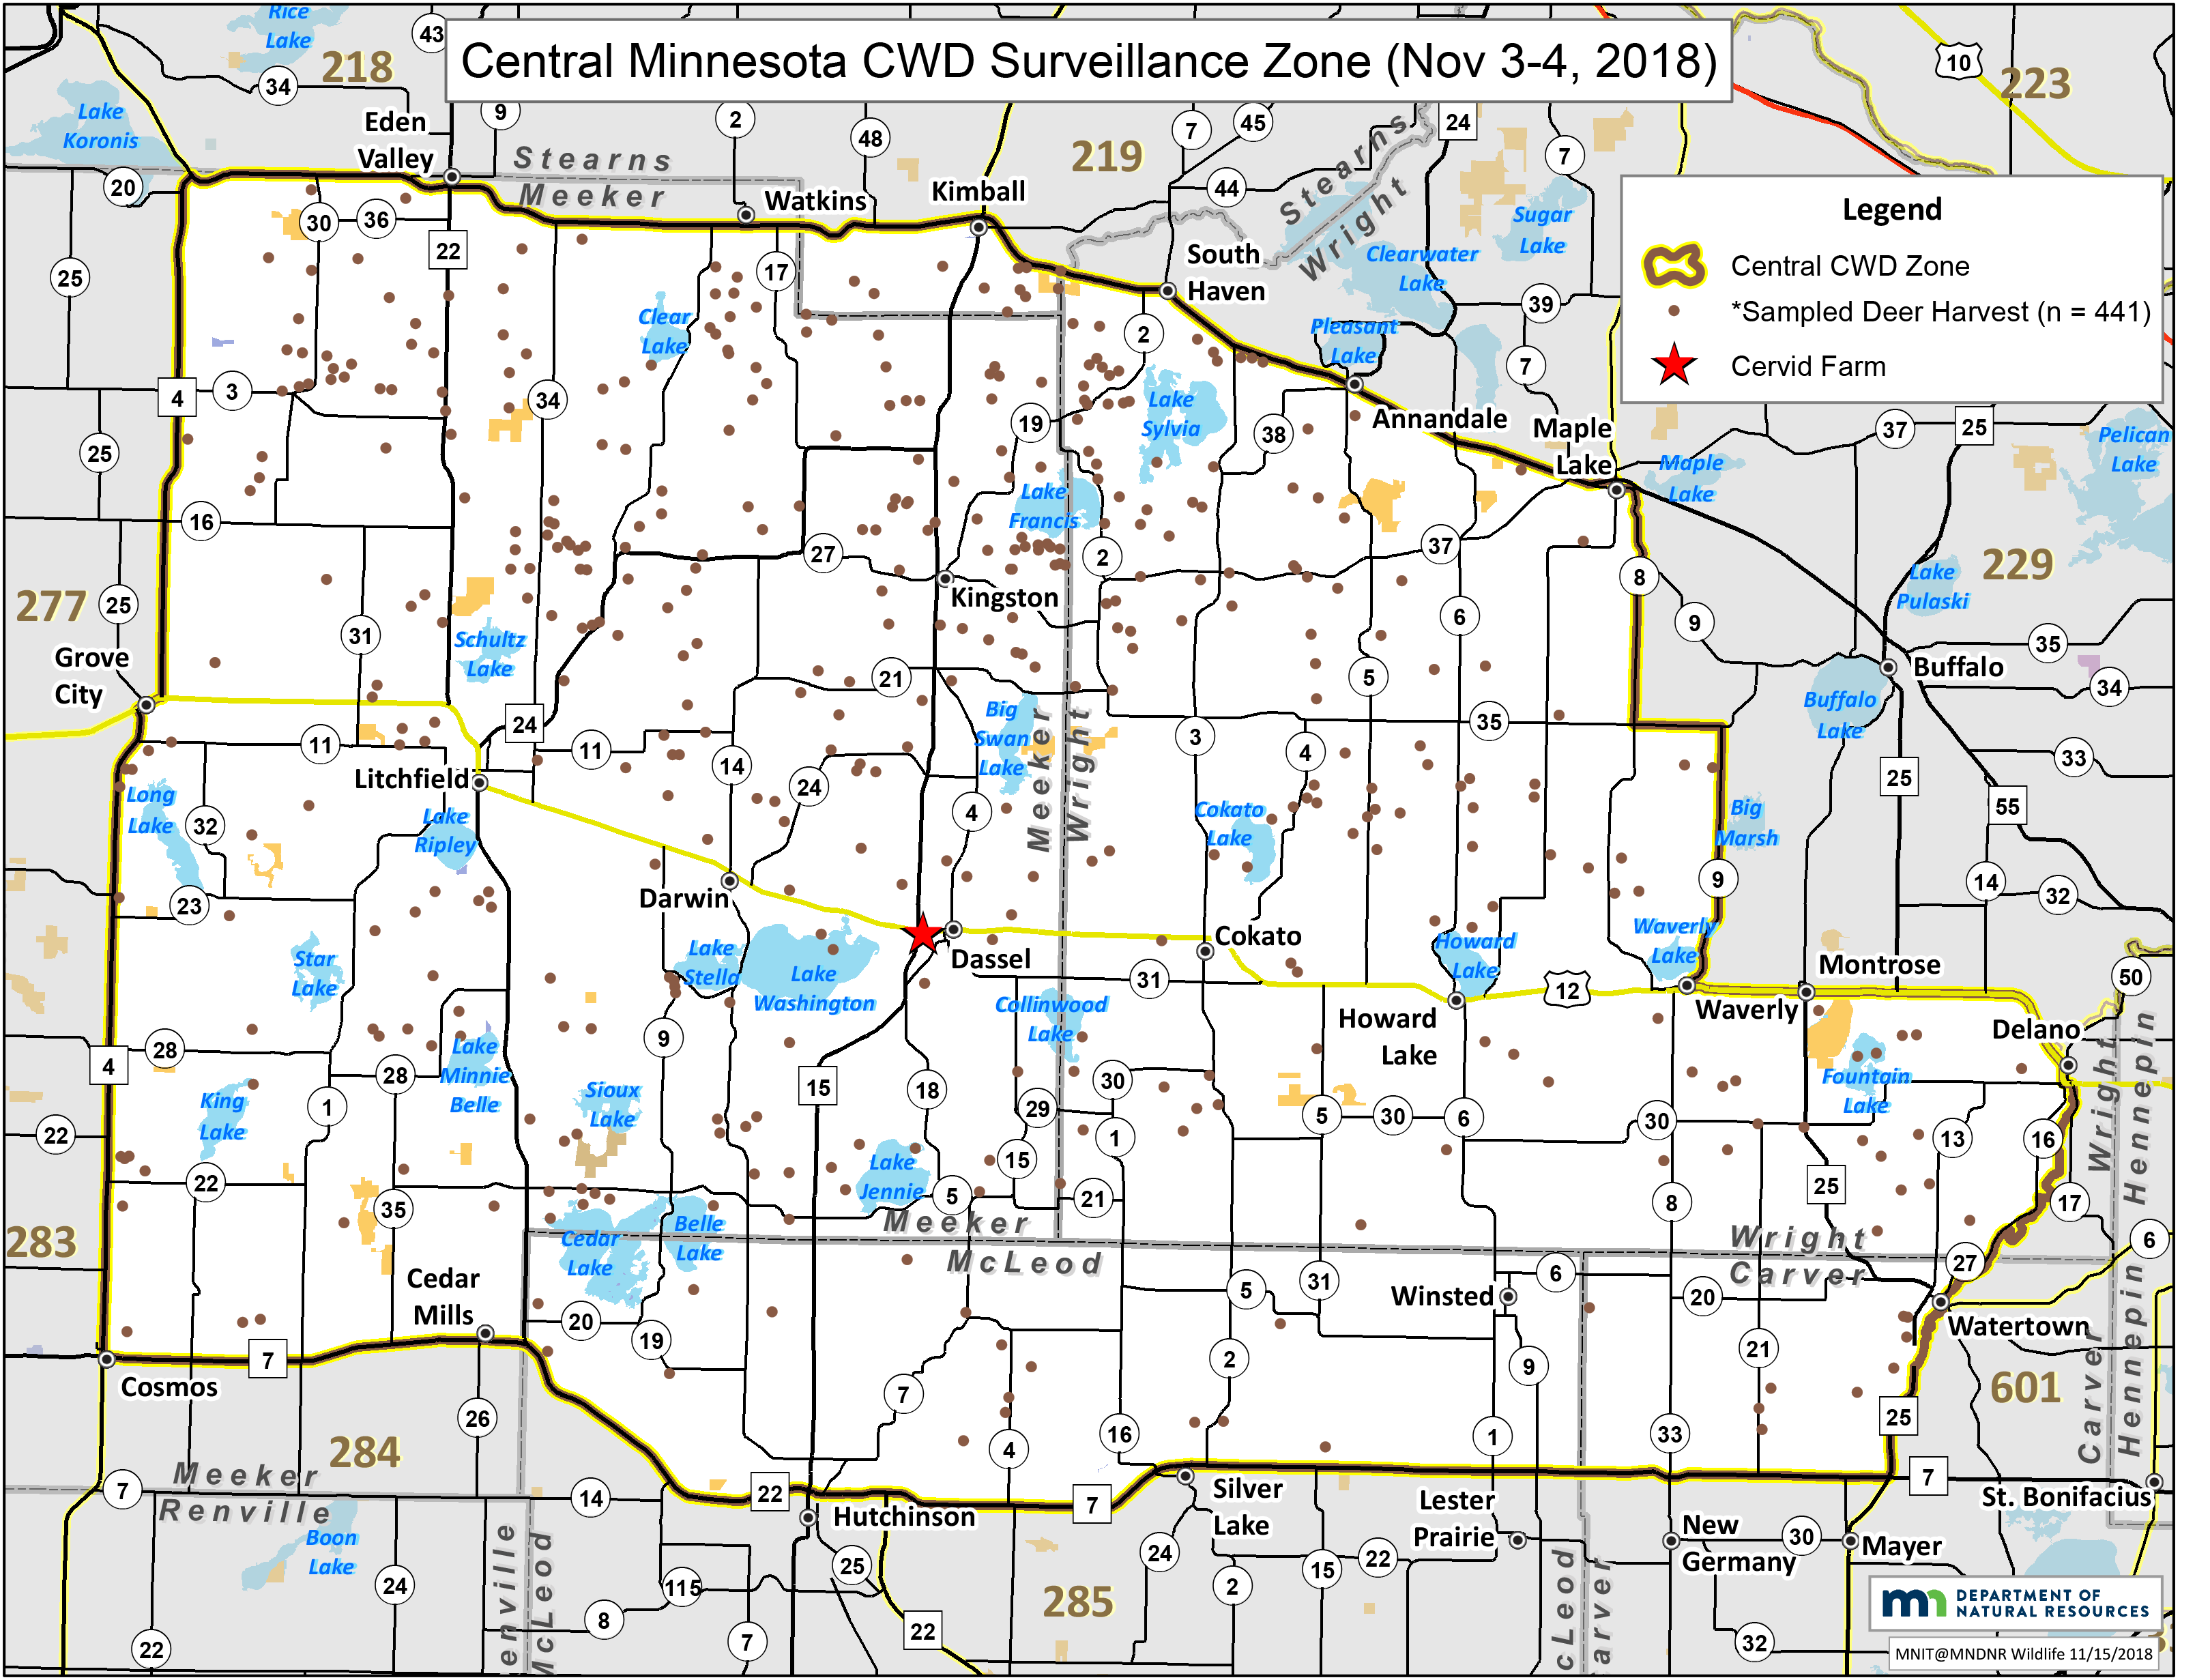 Map showing where CWD samplies were taken in central Minnesota.